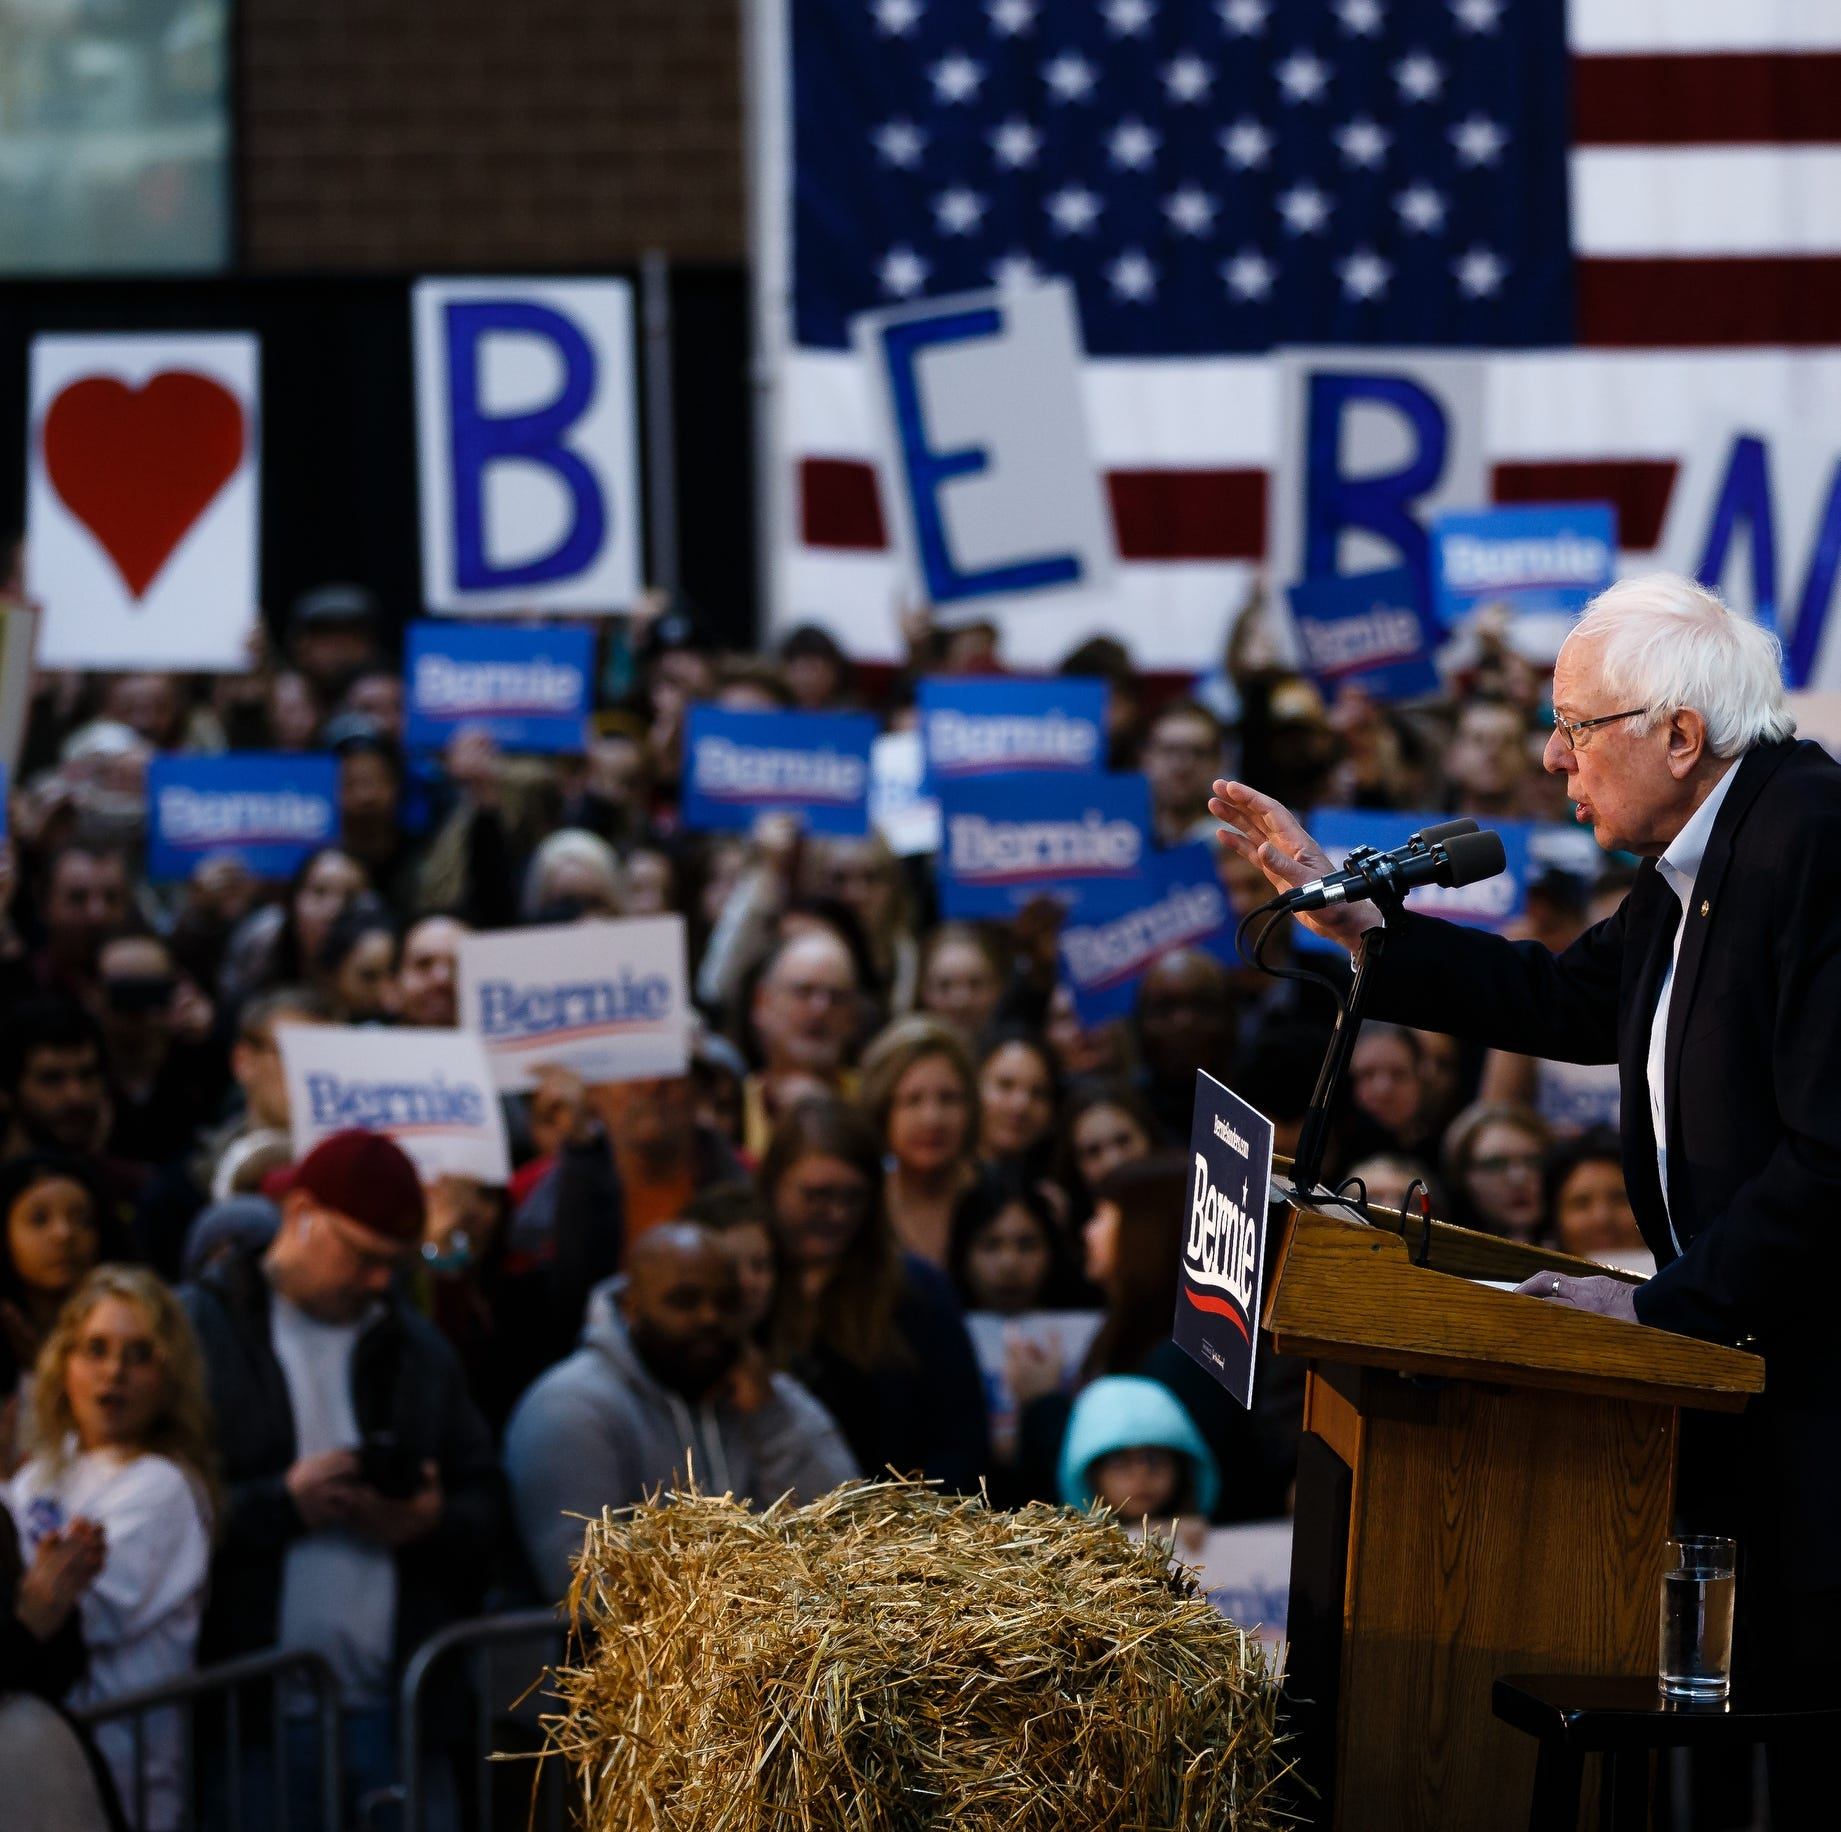 Bernie Sanders: I'll fight for farmers against powerful agribusiness